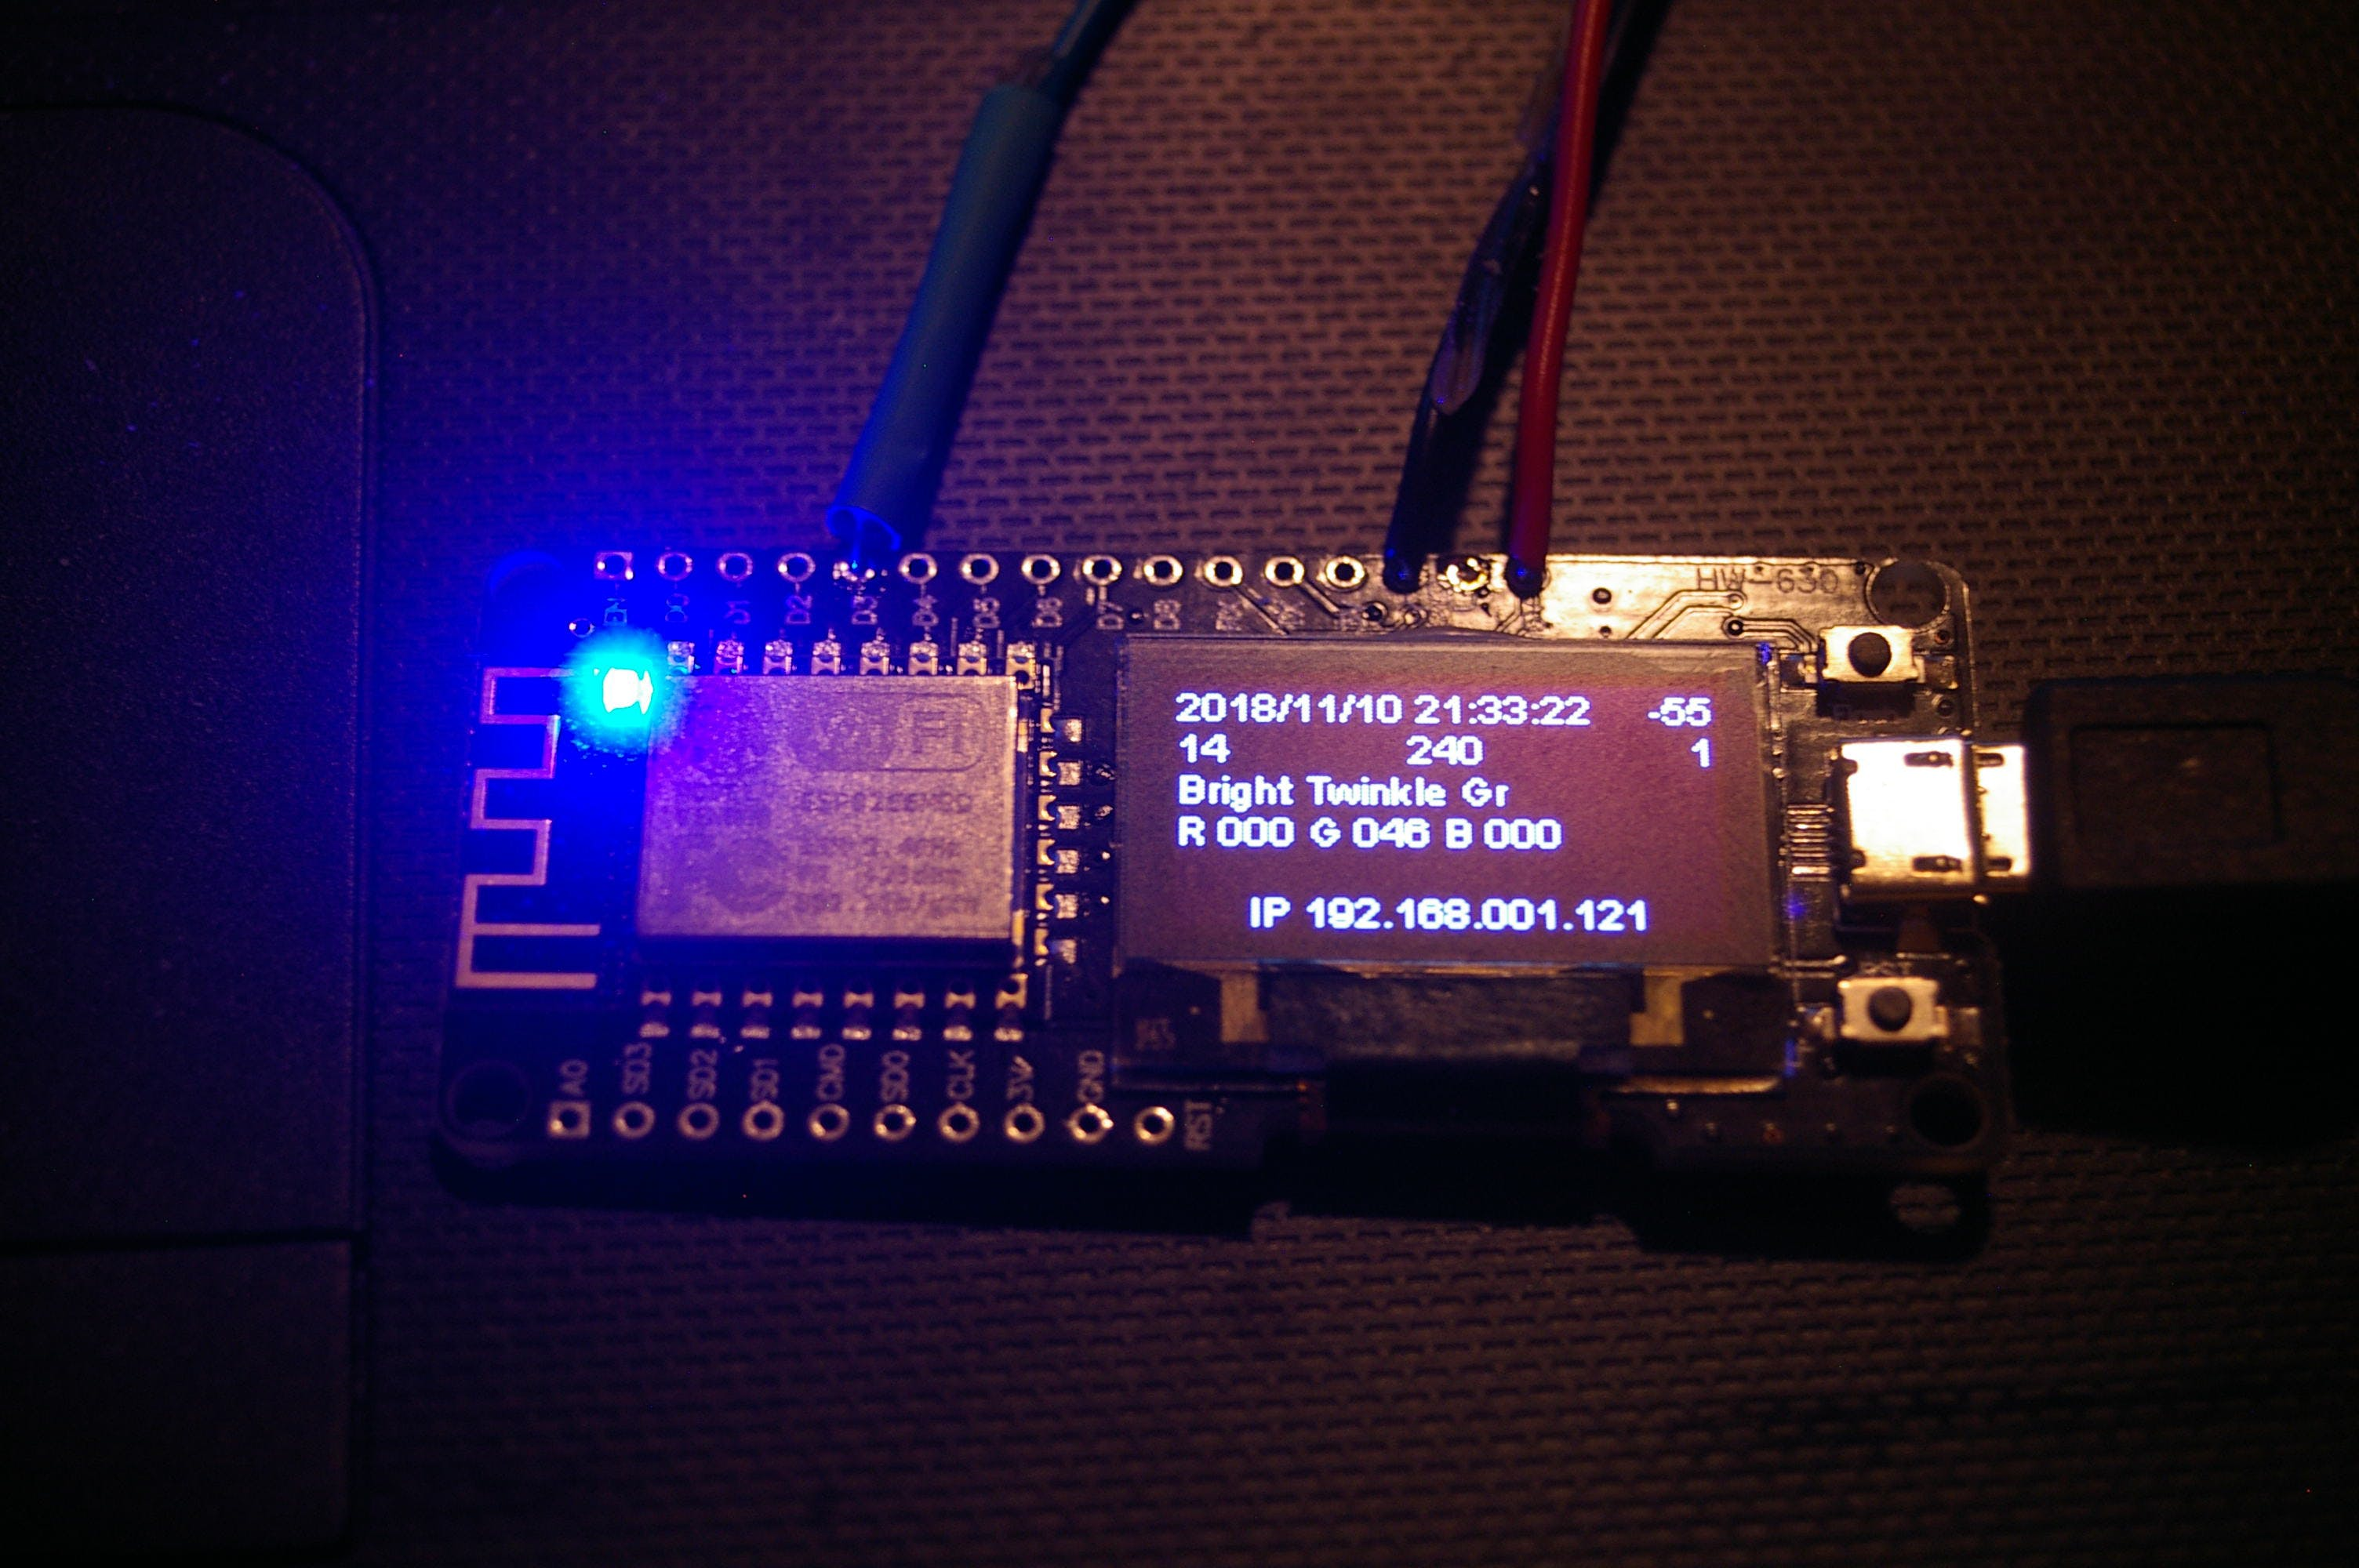 Testing Software on a integrated display board